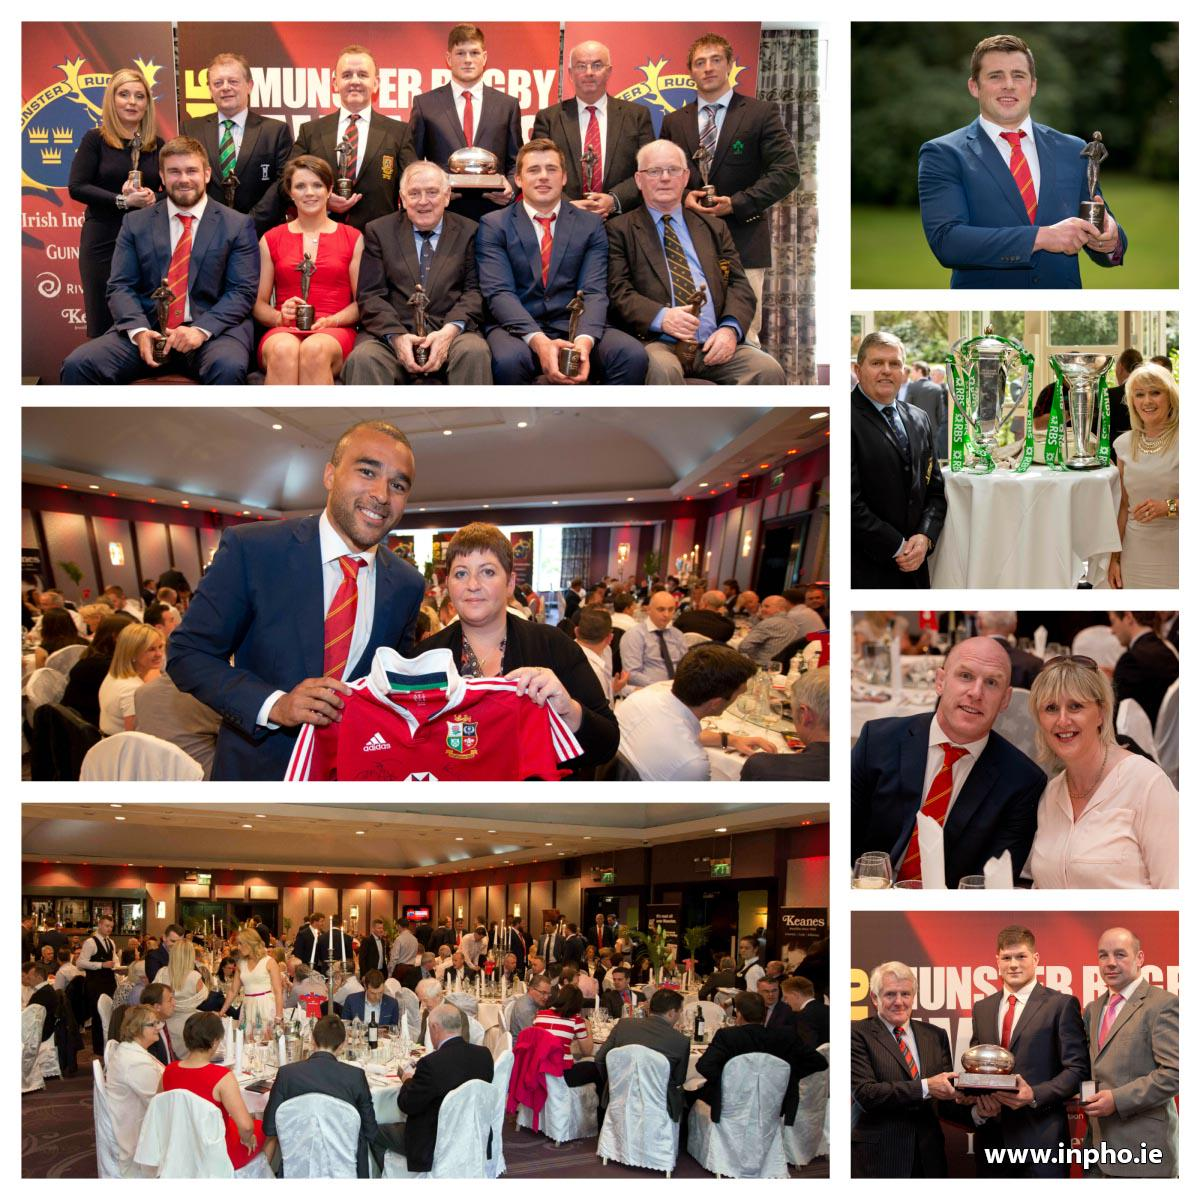 RT @Inphosports: Here are some of the best pics from the 2015 @Munsterrugby Awards that took place today in Cork! @MRSC16 @IrishRugby http://t.co/vmGXtJt556